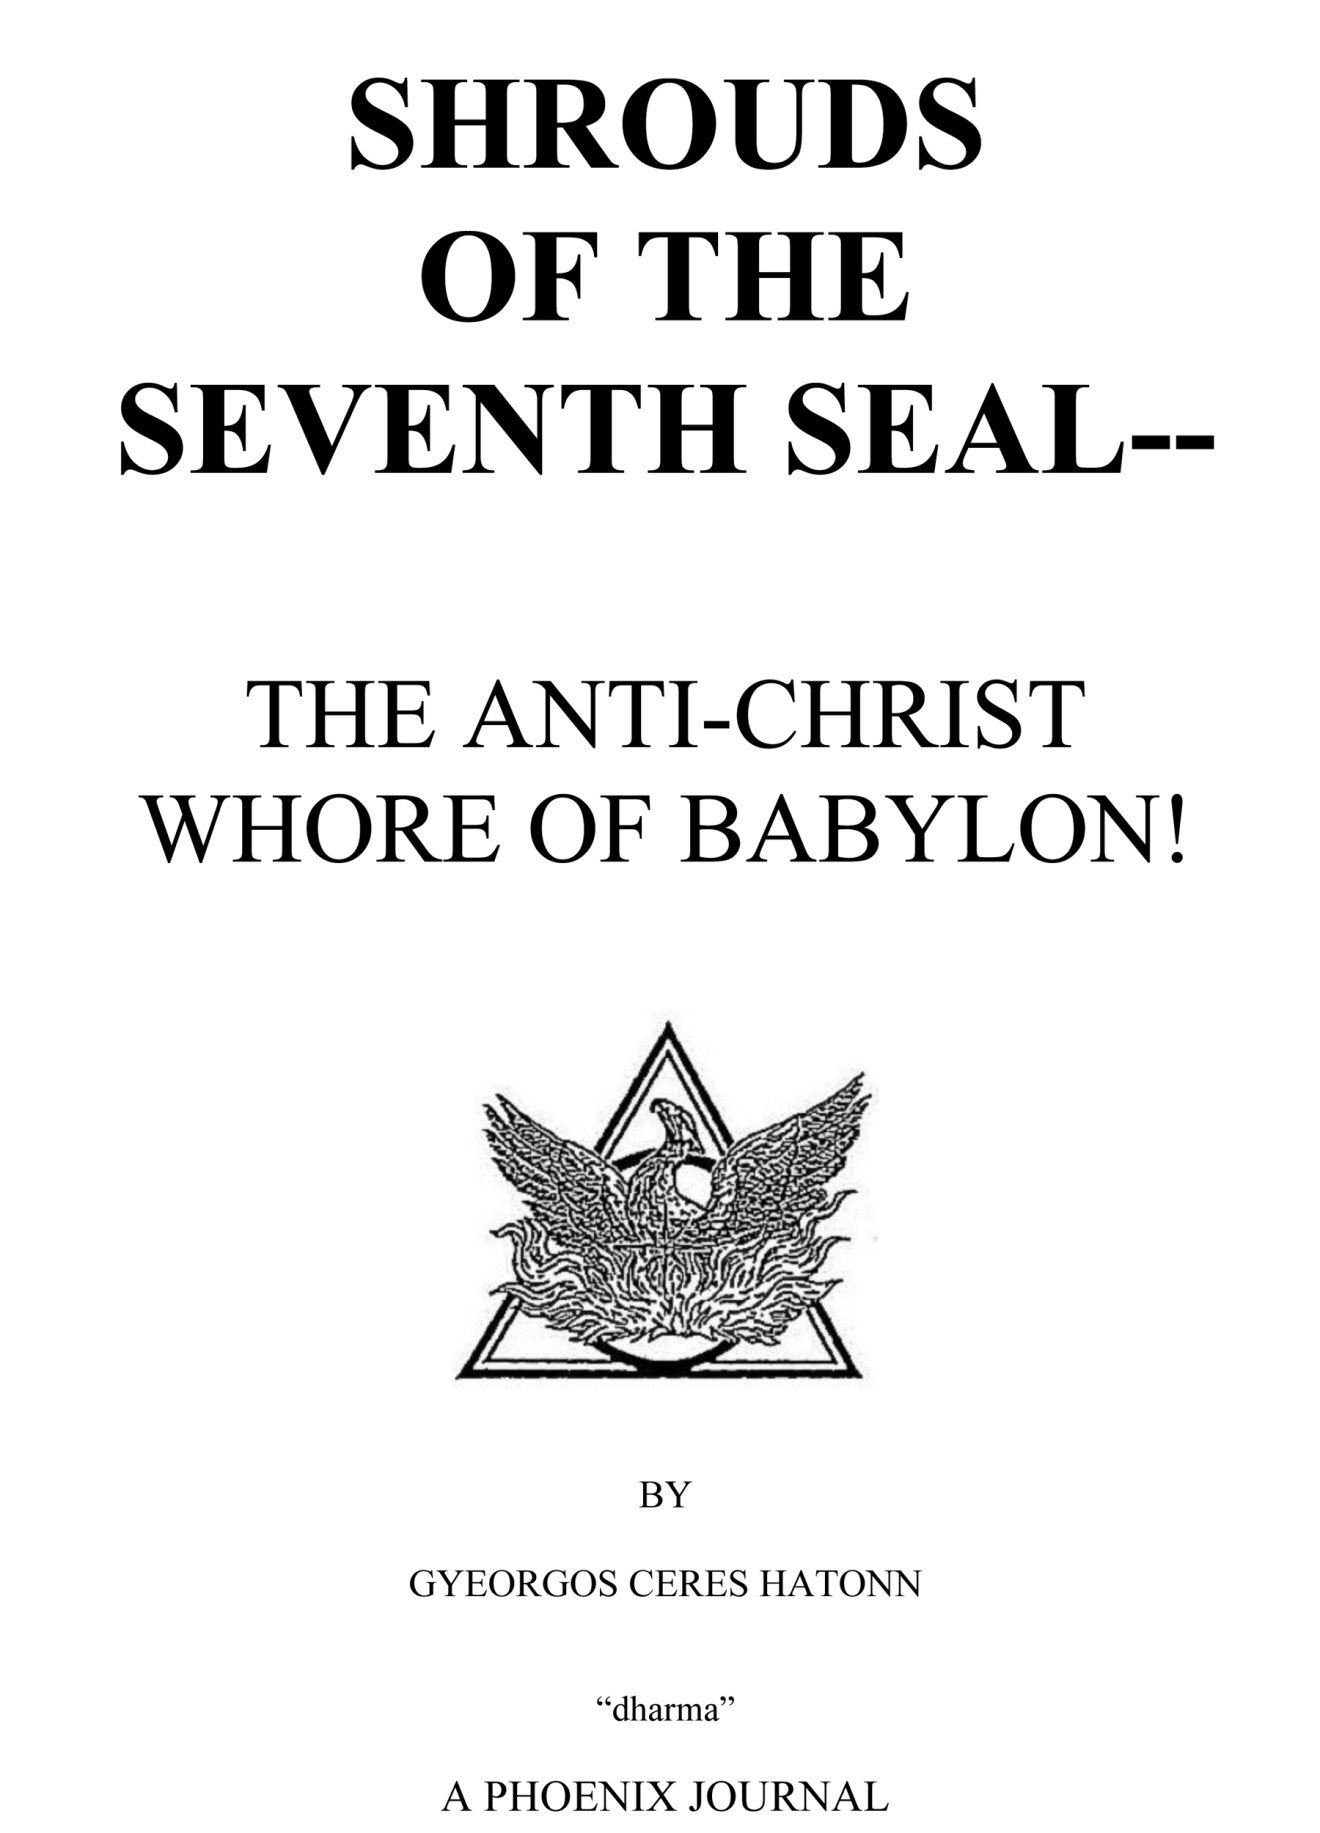 Phoenix Journal %2324 SHROUDS OF THE SEVENTH SEAL THE ANTI CHRIST WHORE OF BABYLON!_html_3f64e719 phoenix journal 24 shrouds of the seventh seal the anti christ